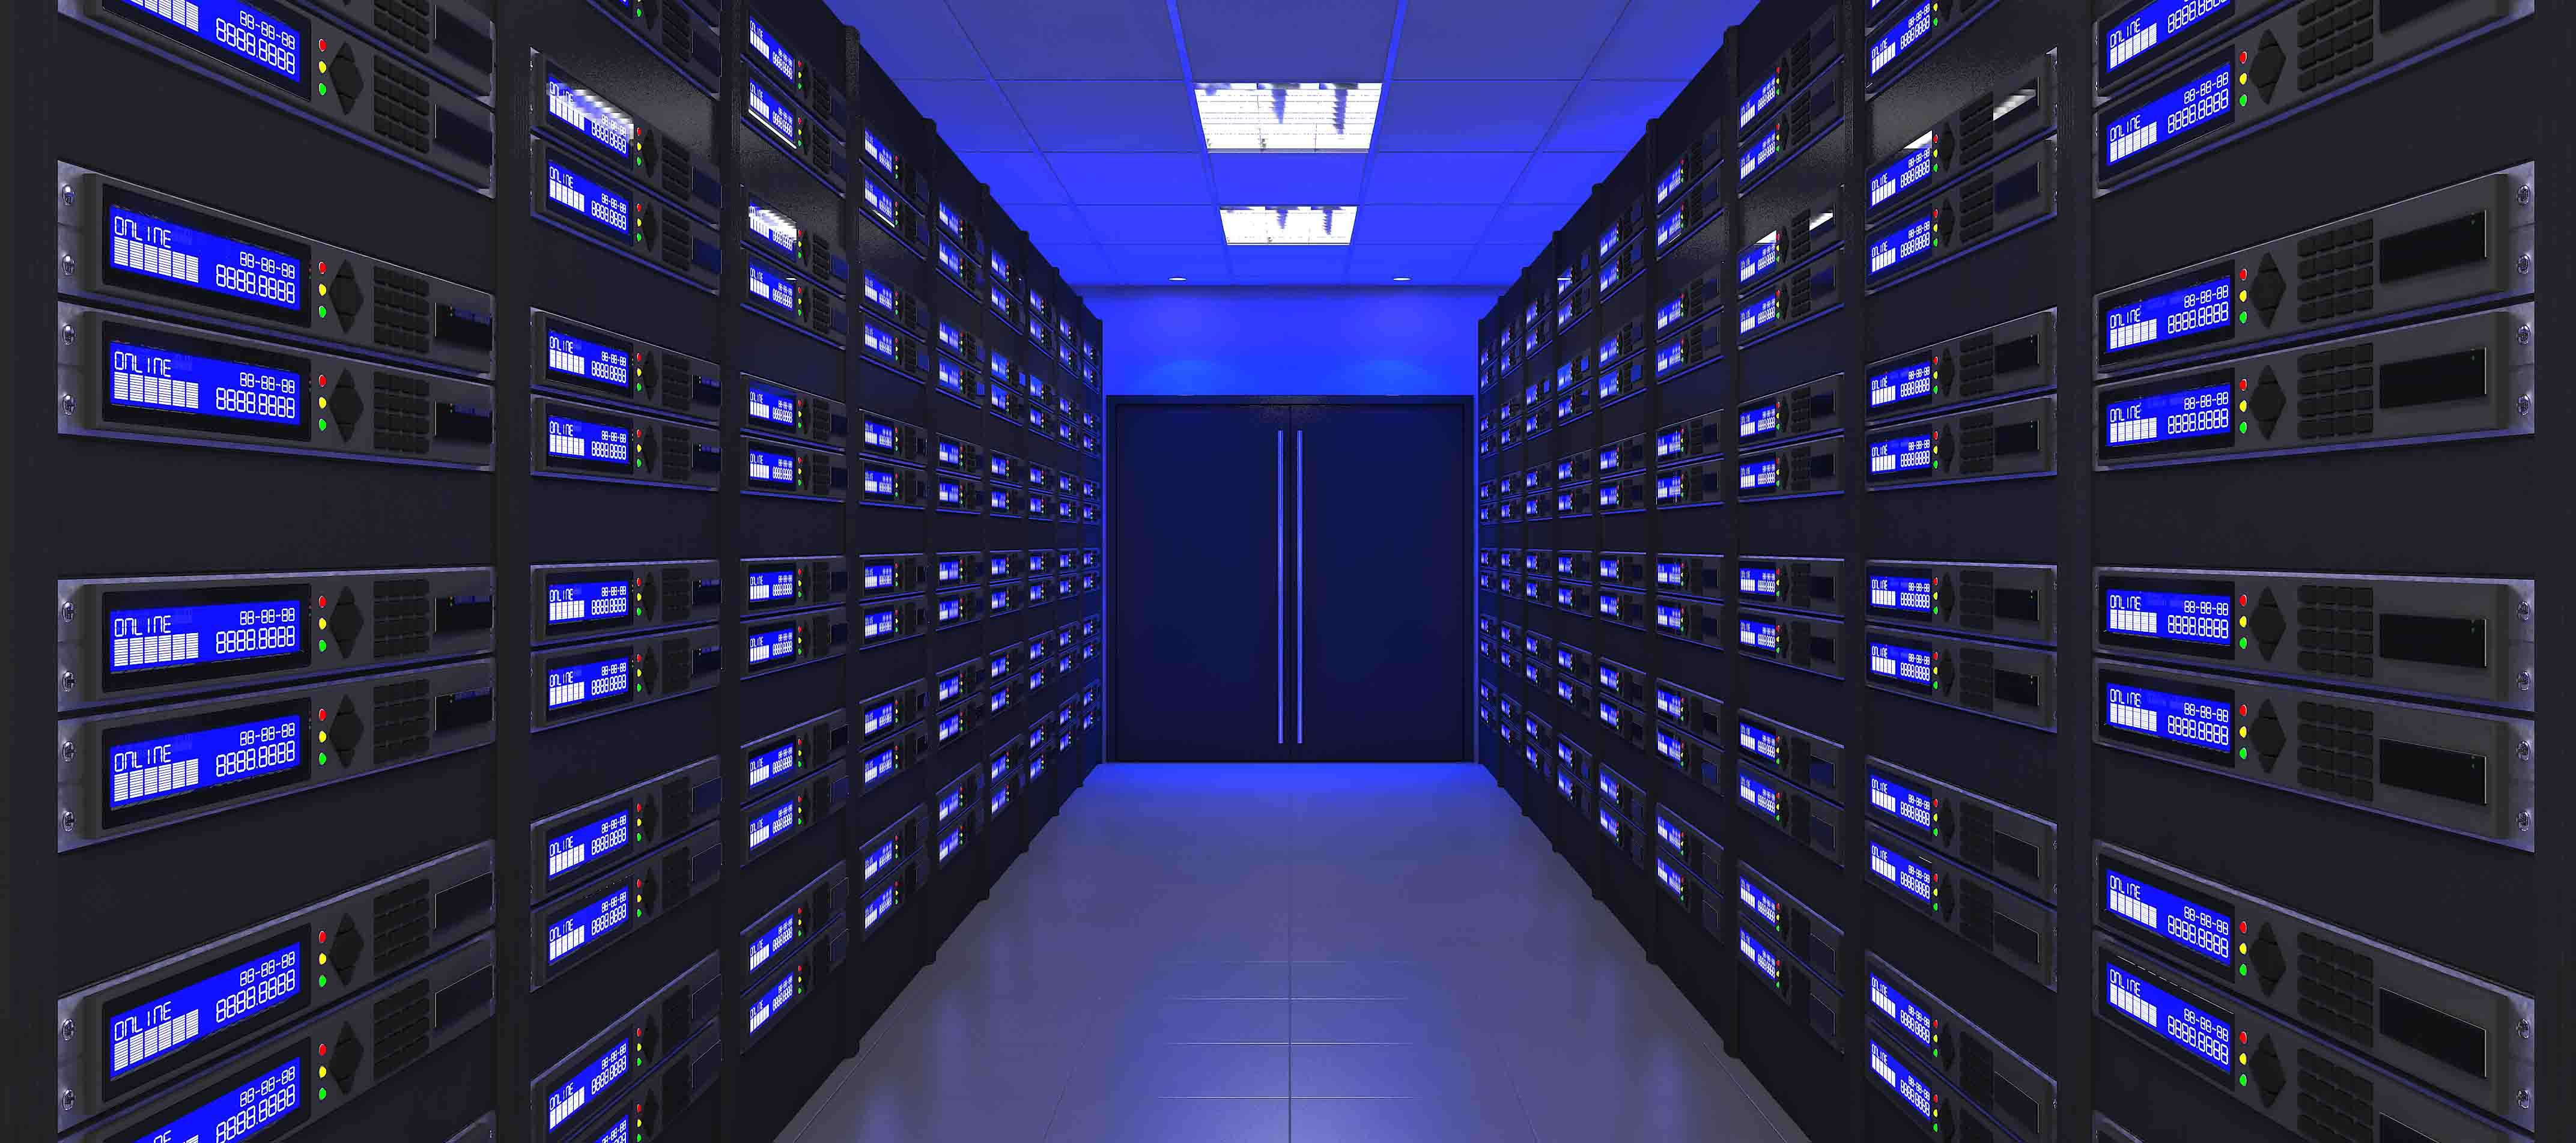 data centres, IAQ, Mark Taylor, blade SErvers, air filtration, particulate, gaseous contaminants, Power Usage Effectiveness, PUE, Camfil UK